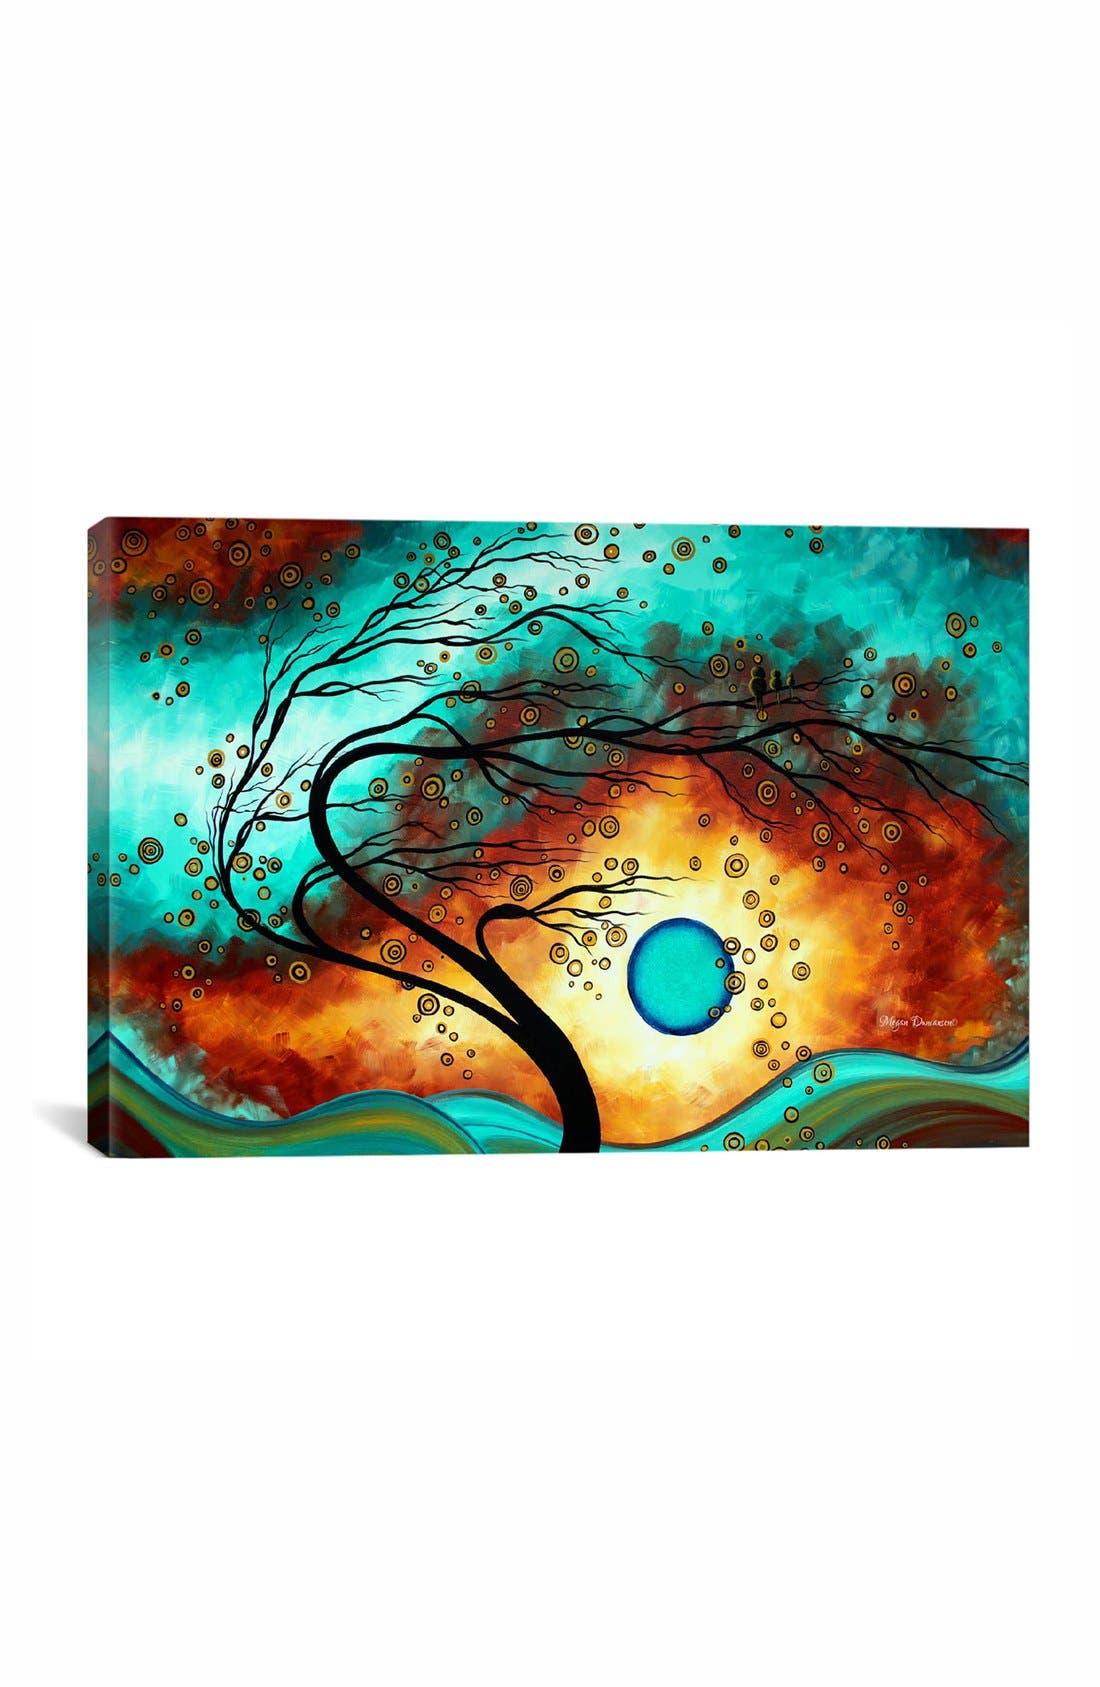 'Family Joy - Megan Duncanson' Giclée Print Canvas Art,                         Main,                         color, Blue/ Green